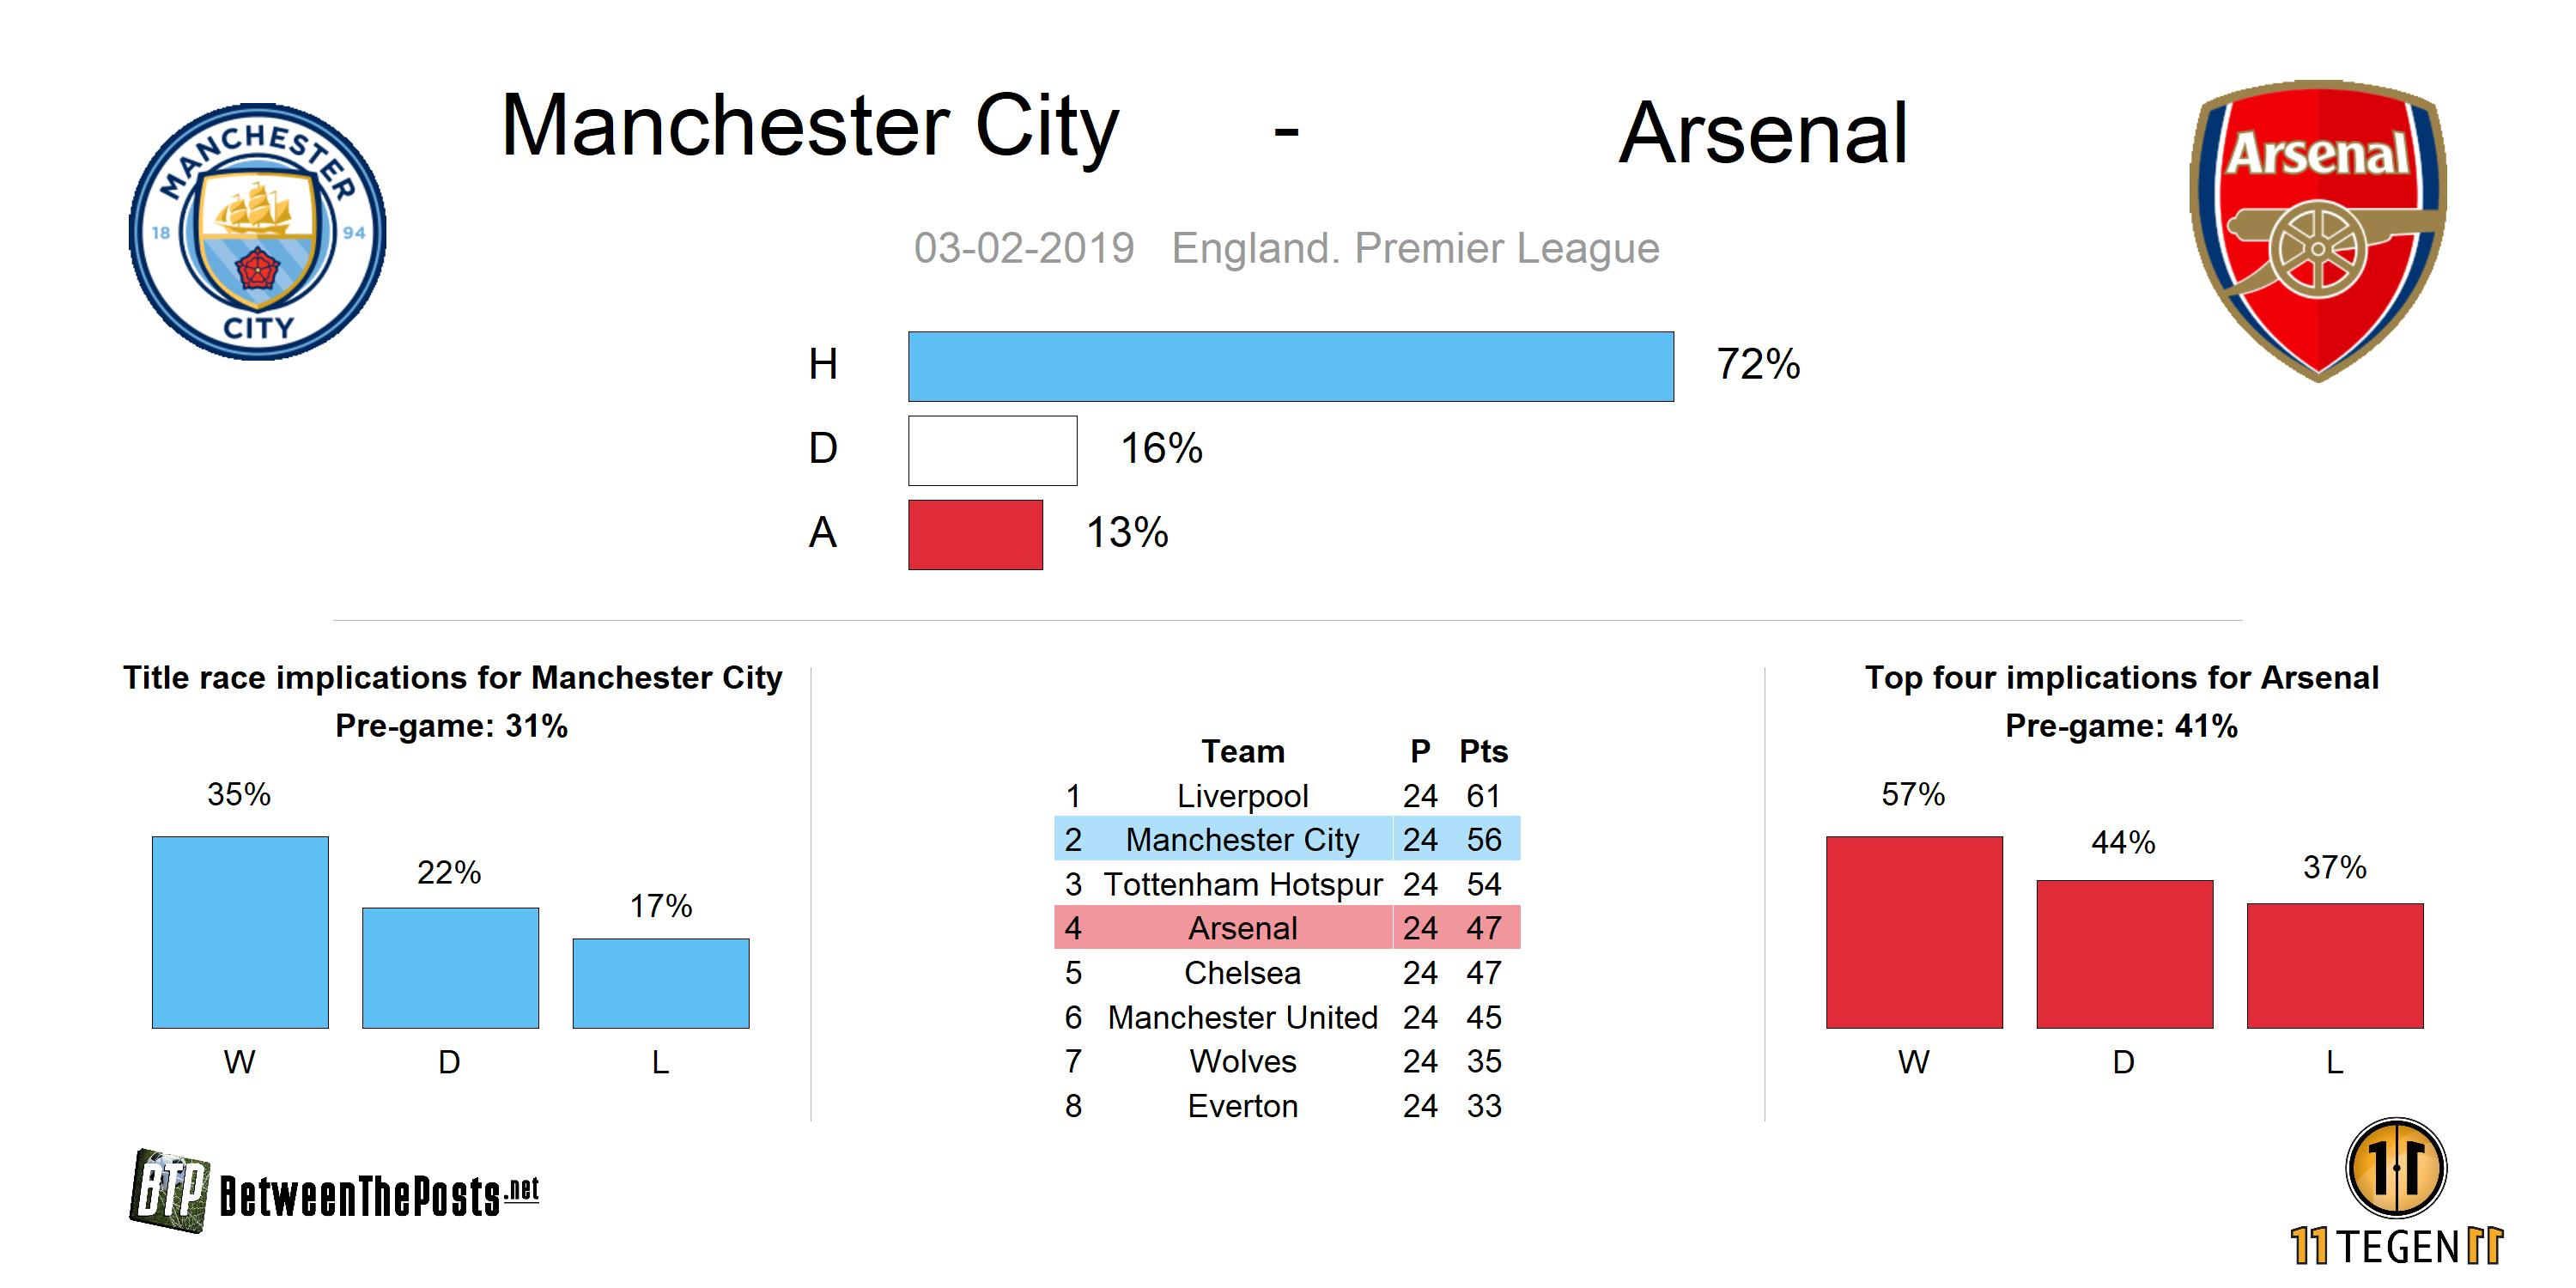 Preview Manchester City - Arsenal 3-1 Premier League